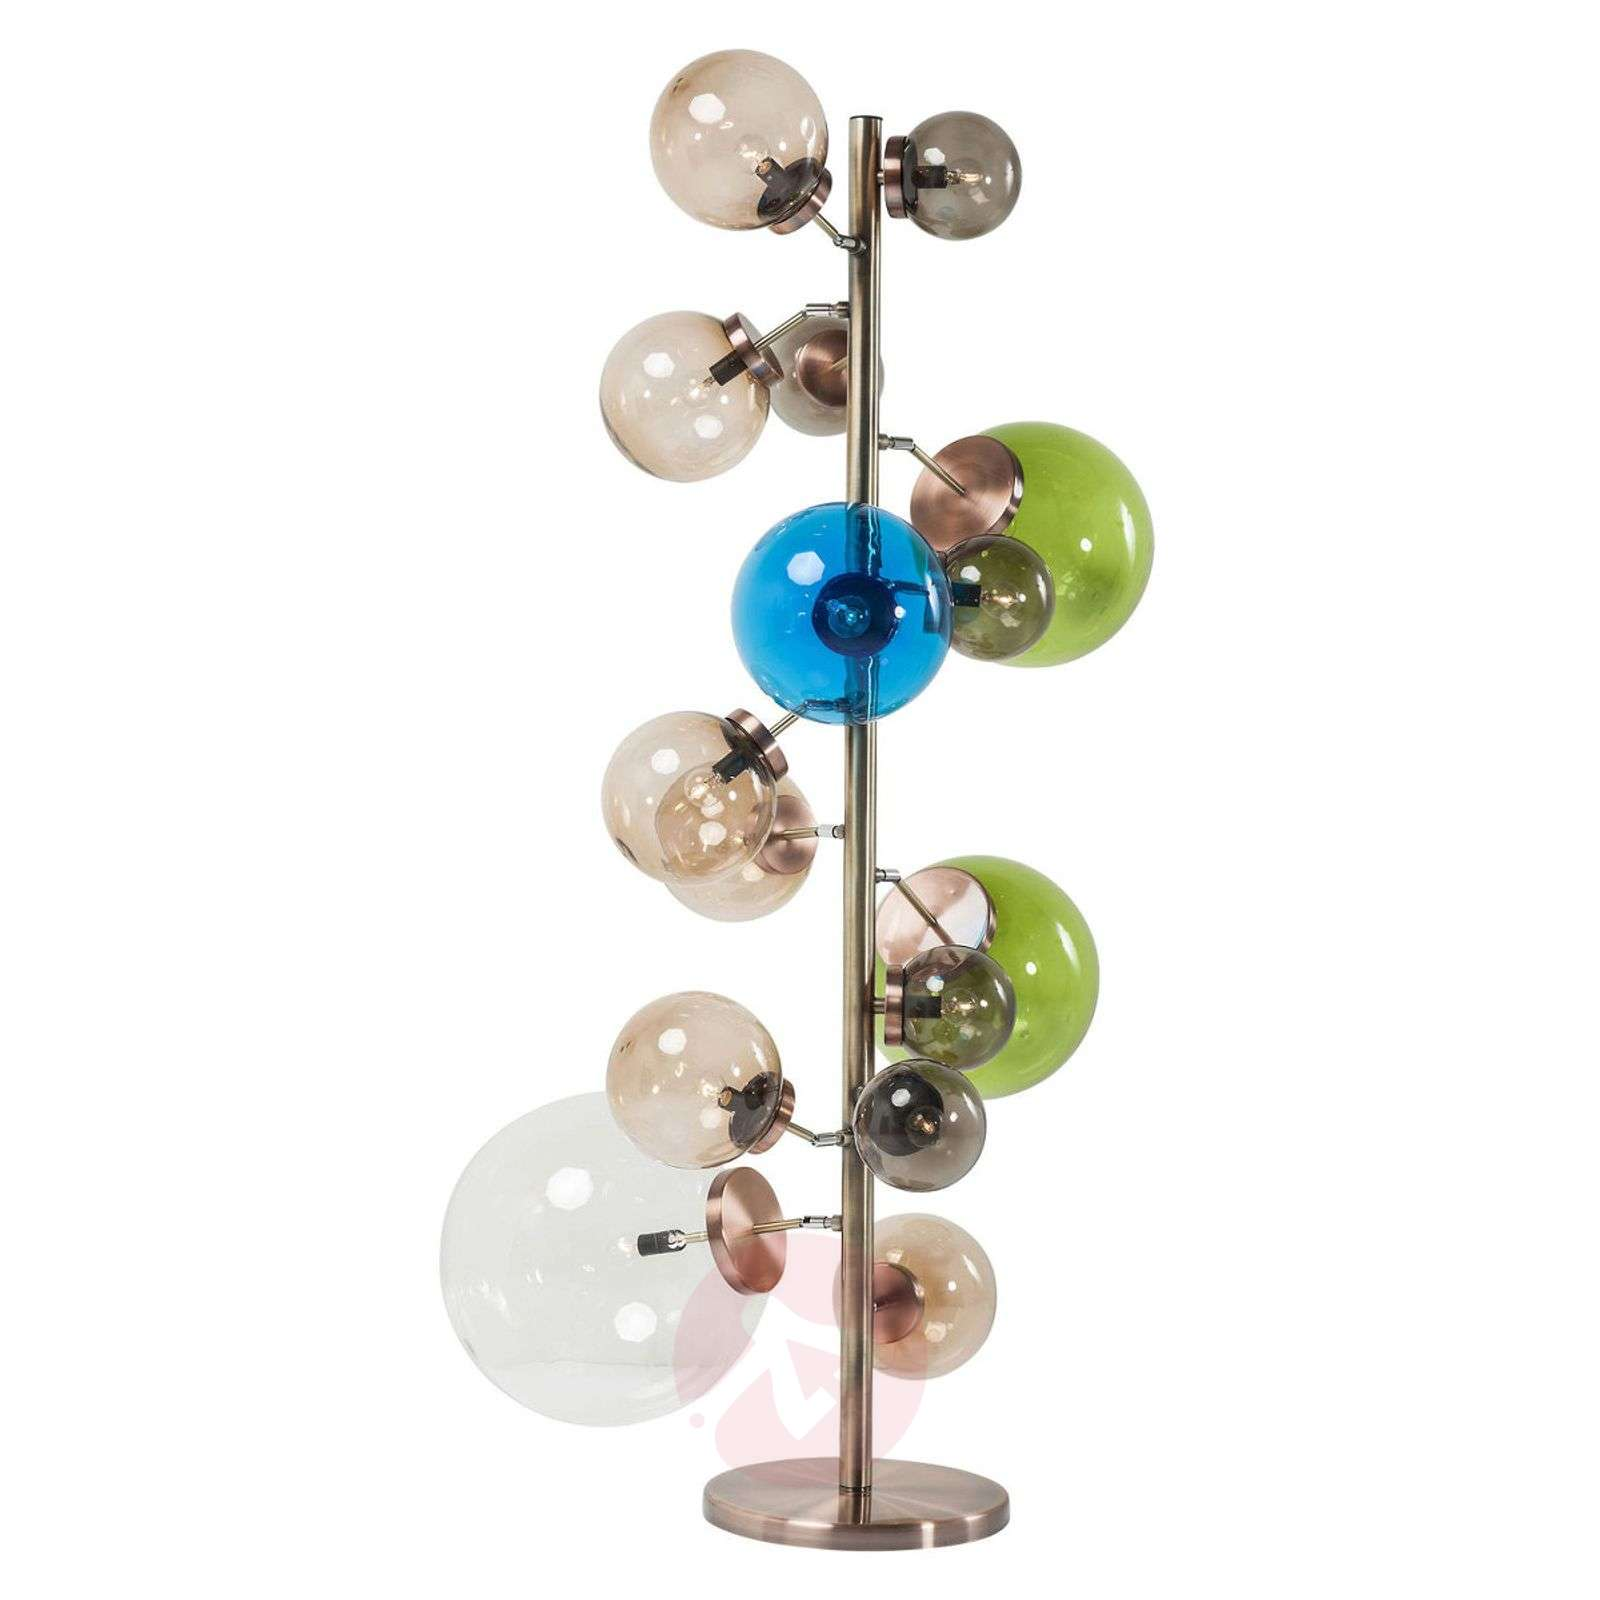 KARE Balloon floor lamp with acrylic globes-5517431-01